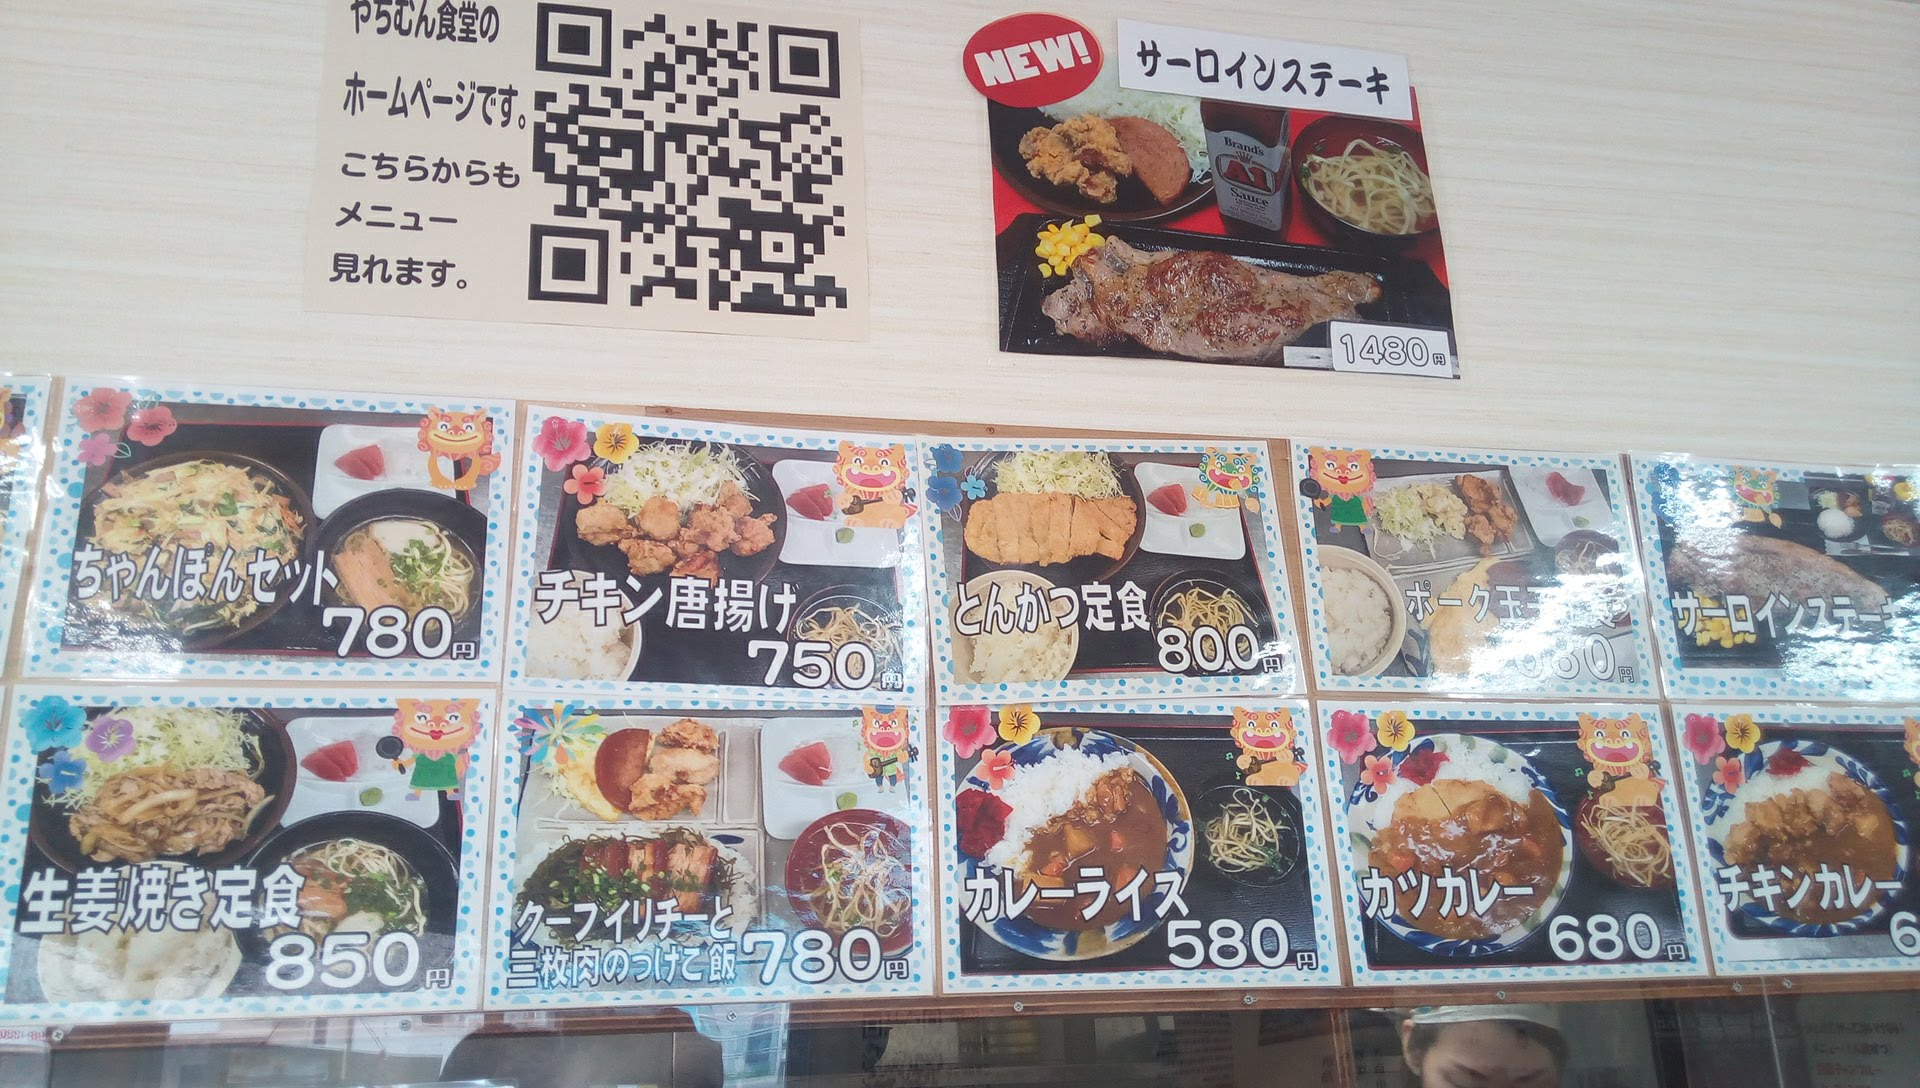 The menu of the Yachimun shokudou 3